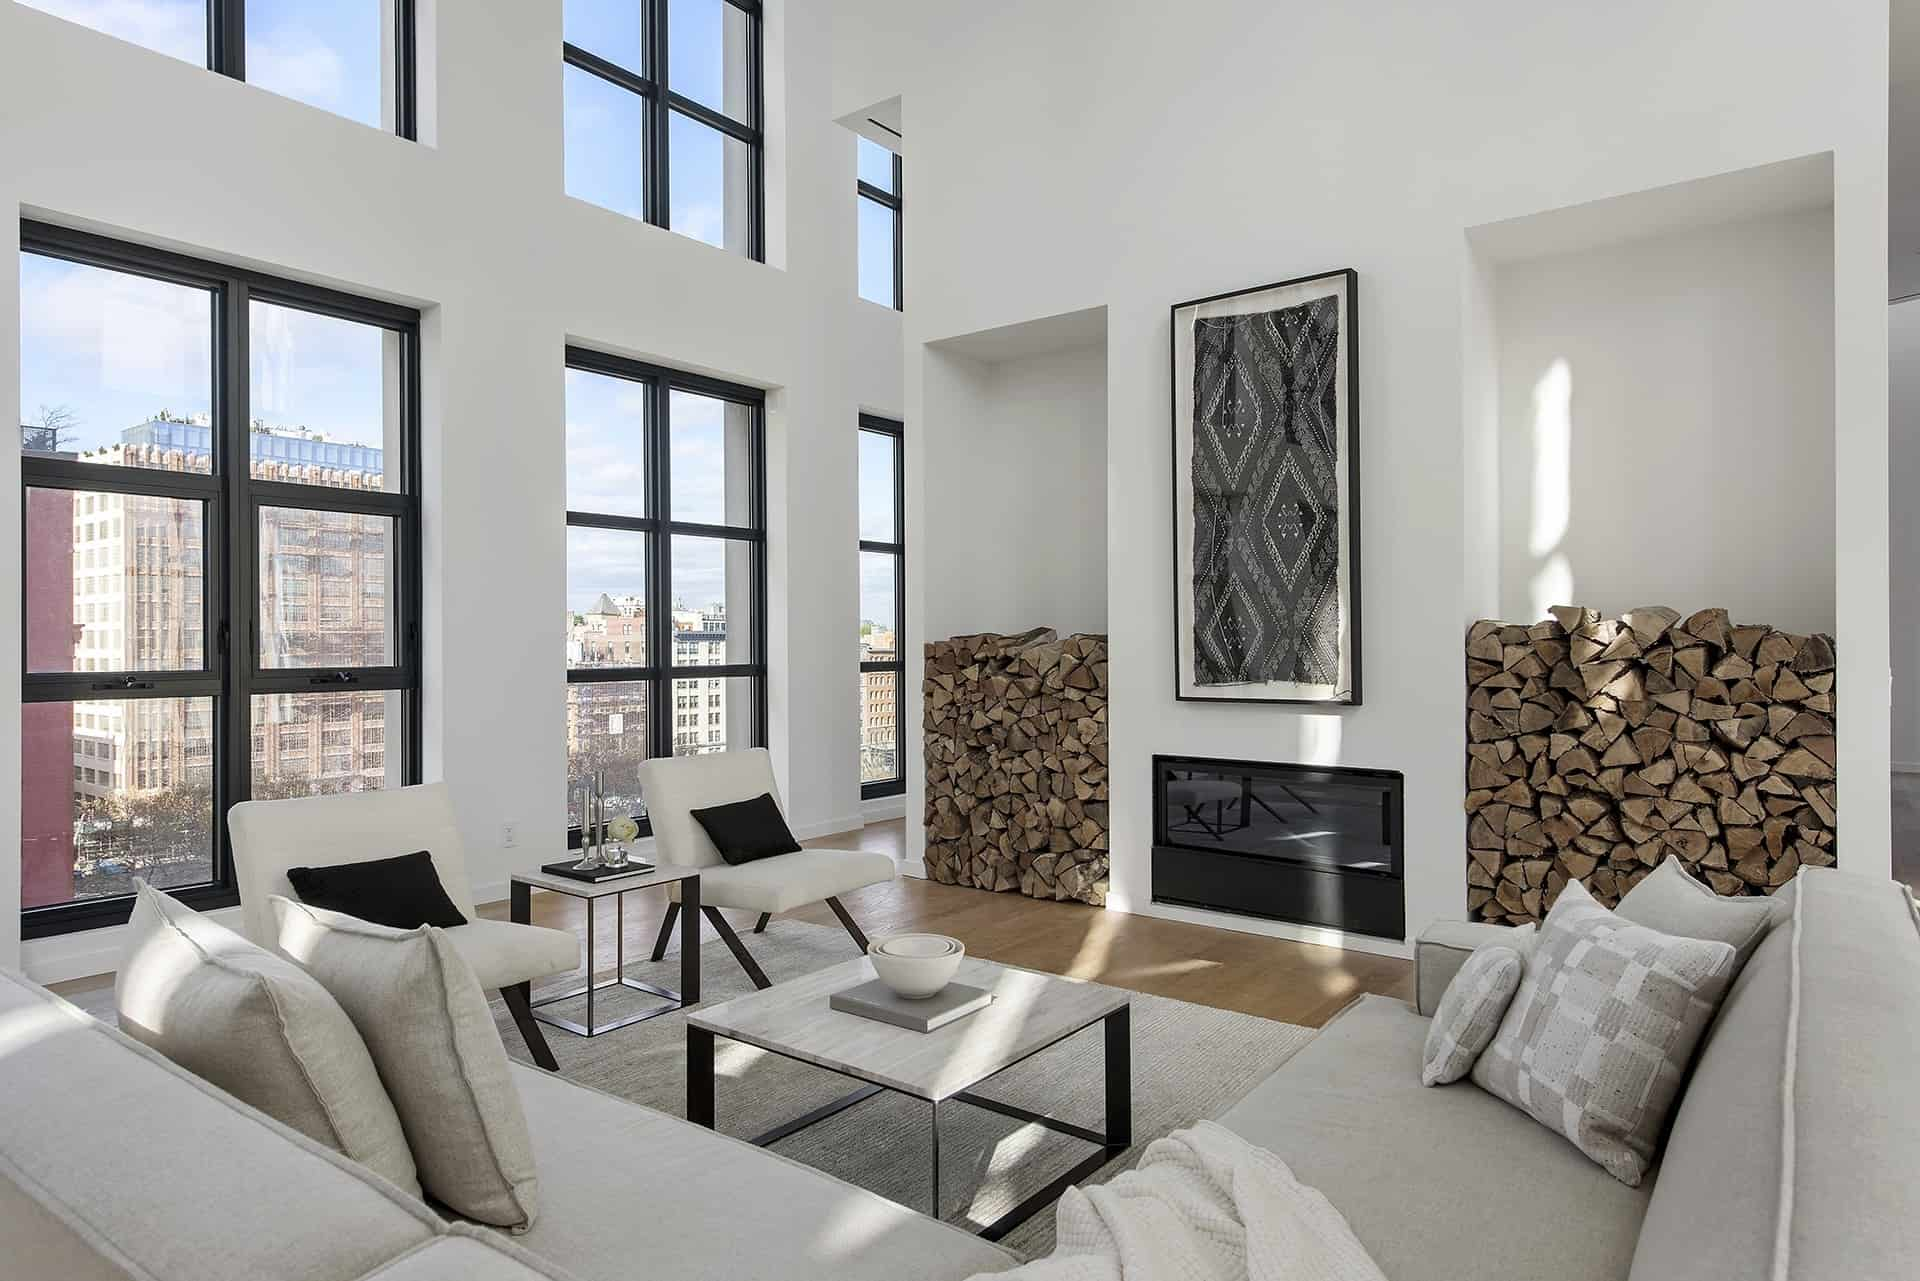 Minimalist-Penthouse-New York-02-1 Kindesign